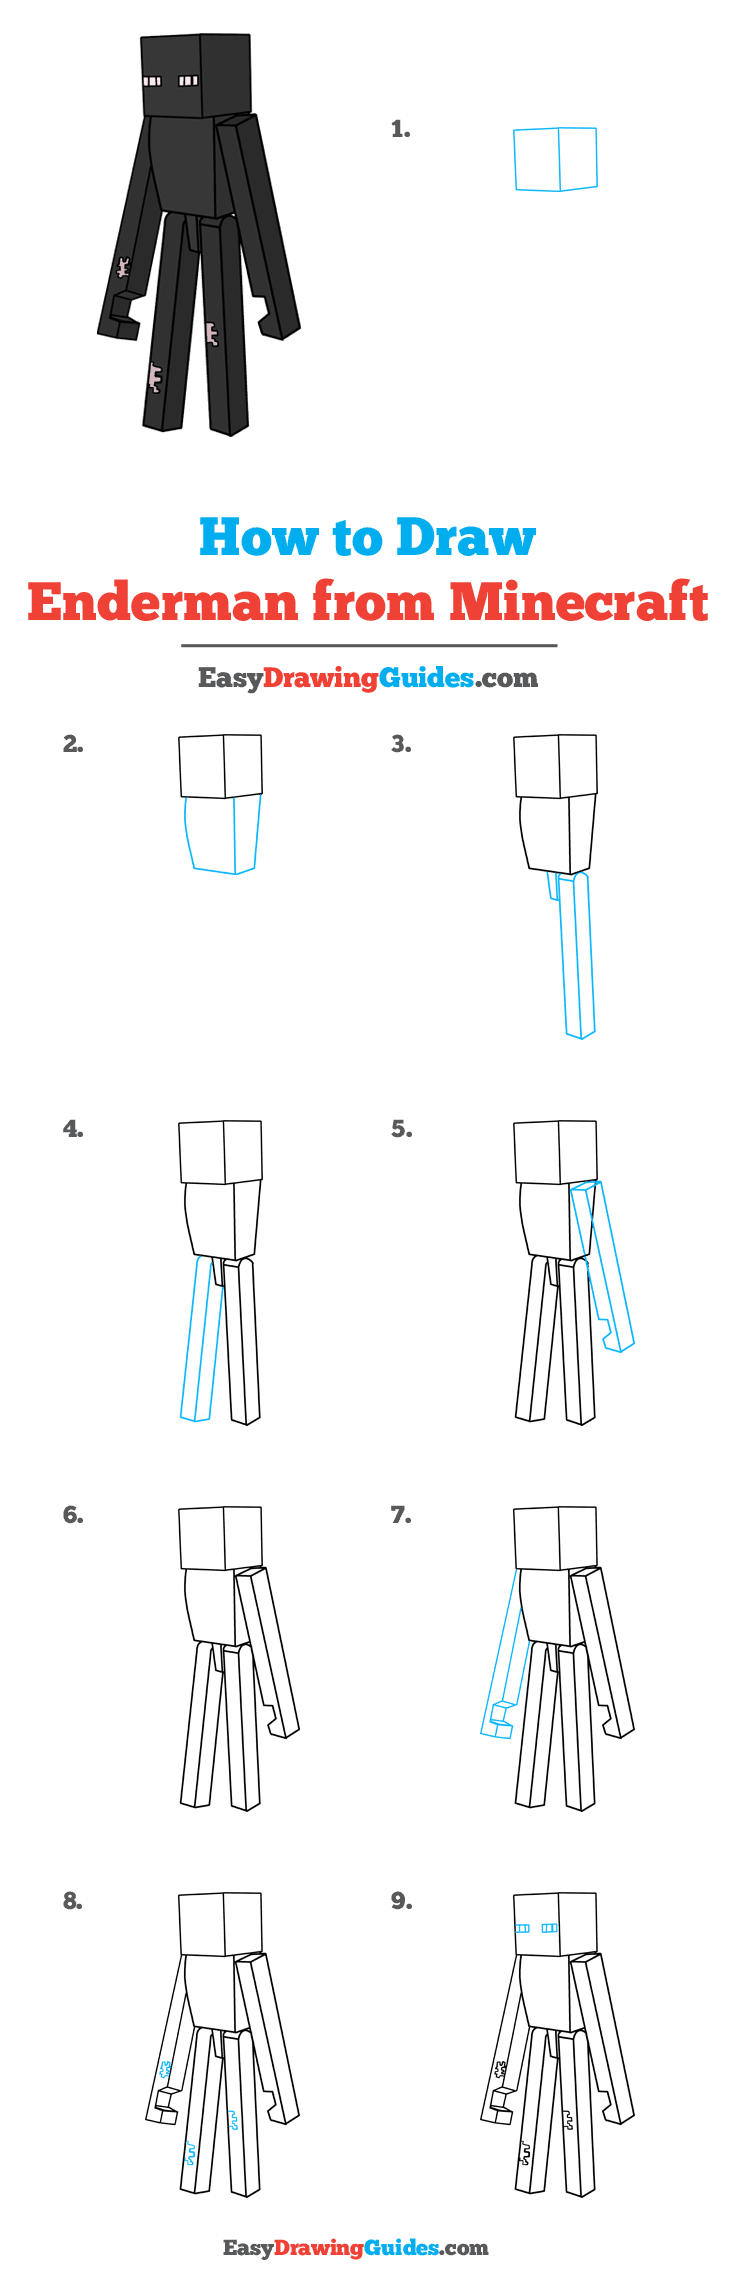 How to Draw Enderman from Minecraft